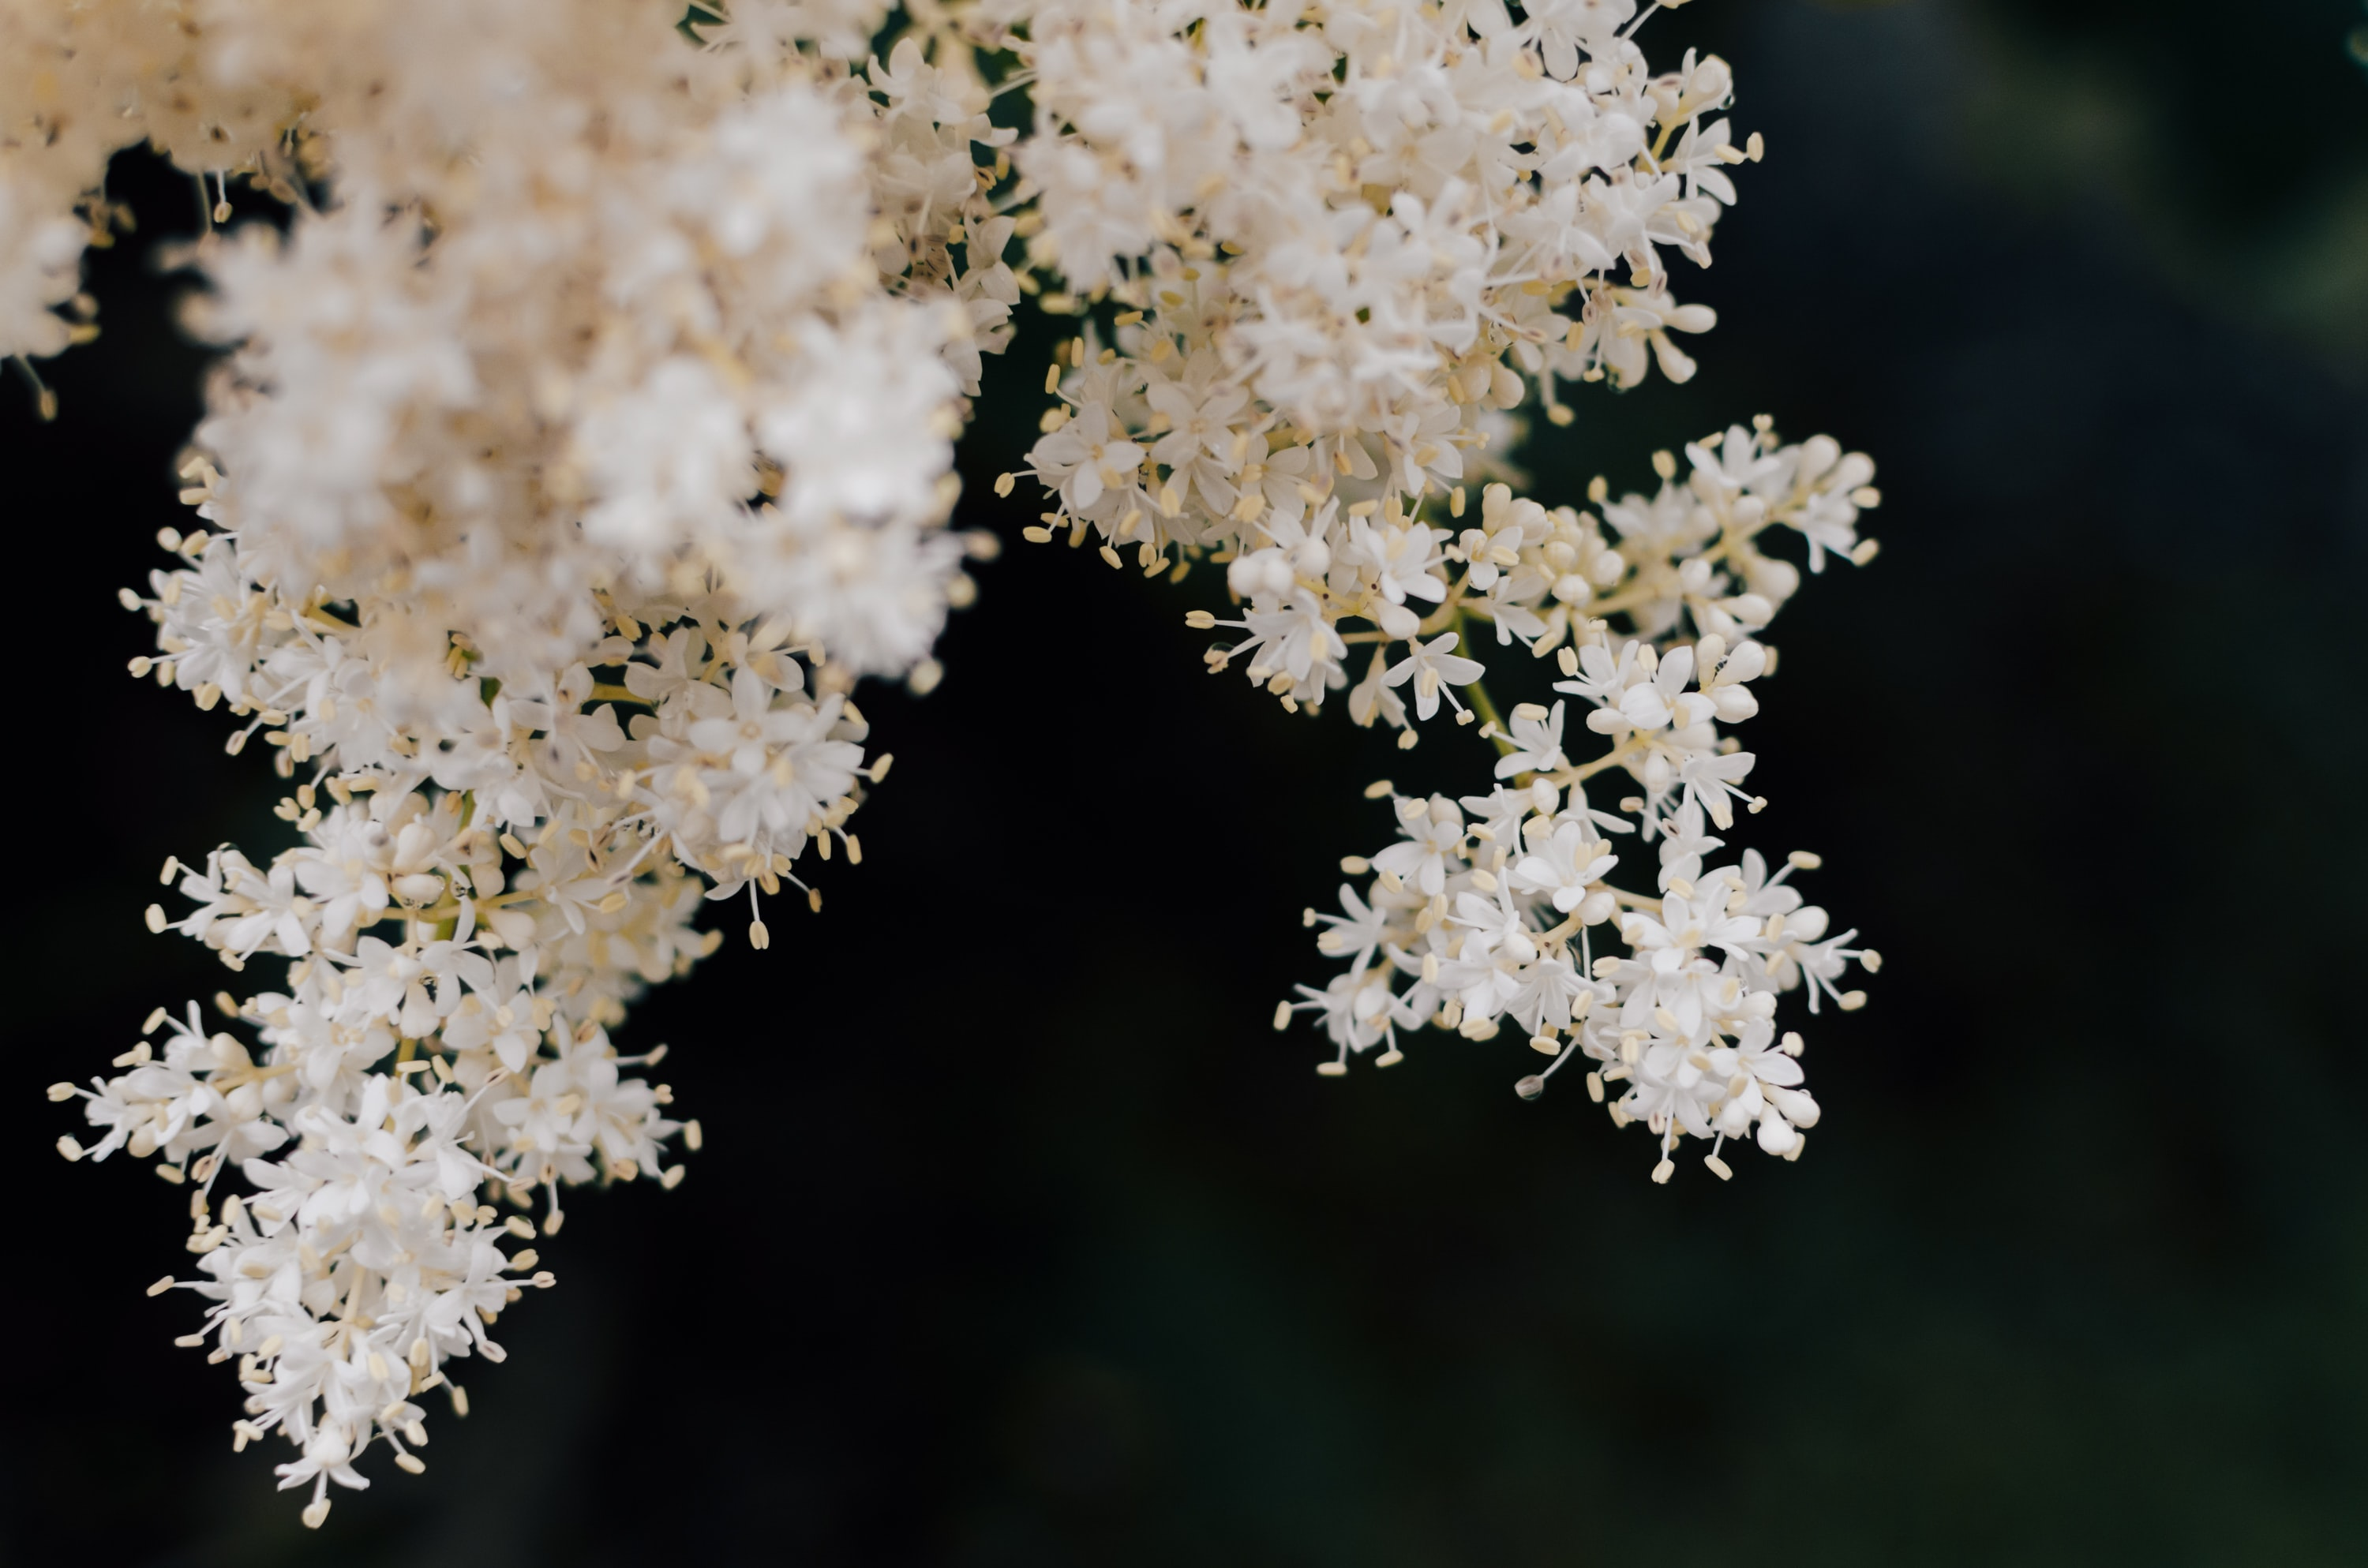 A bunch of white flowers, with a dark background.